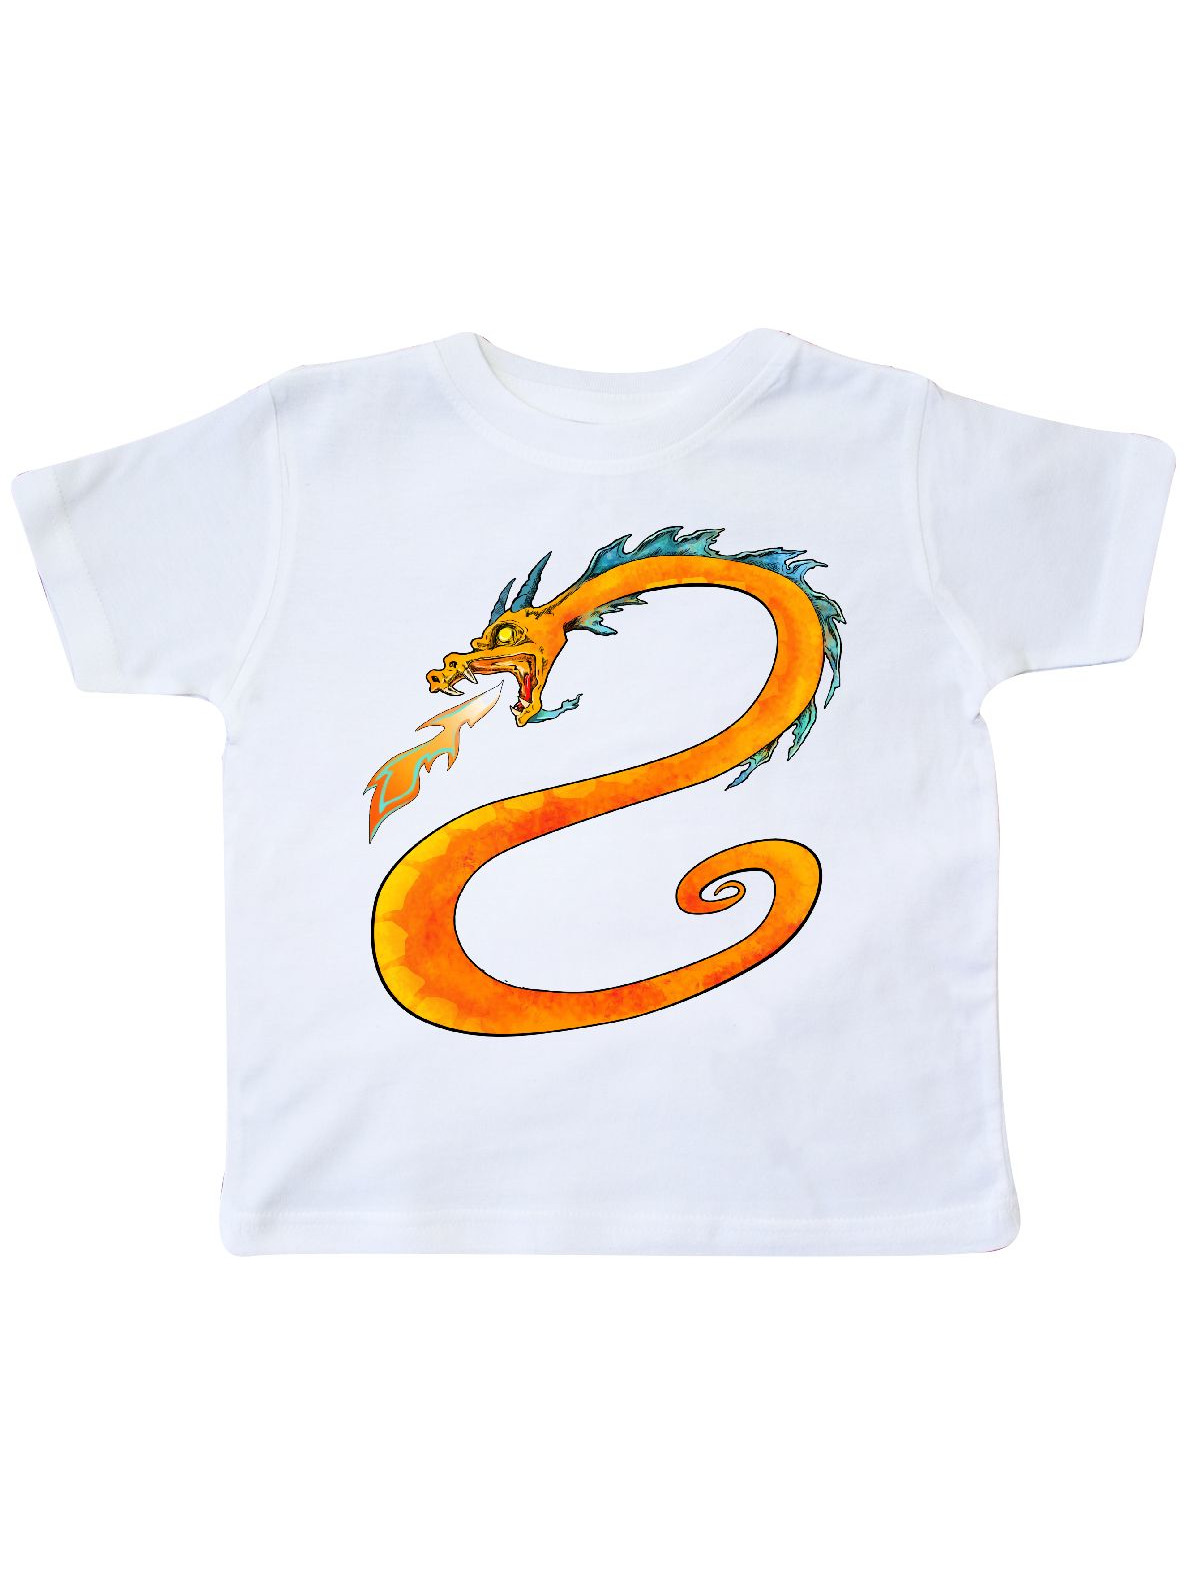 Fire-Breathing Dragon Toddler T-Shirt